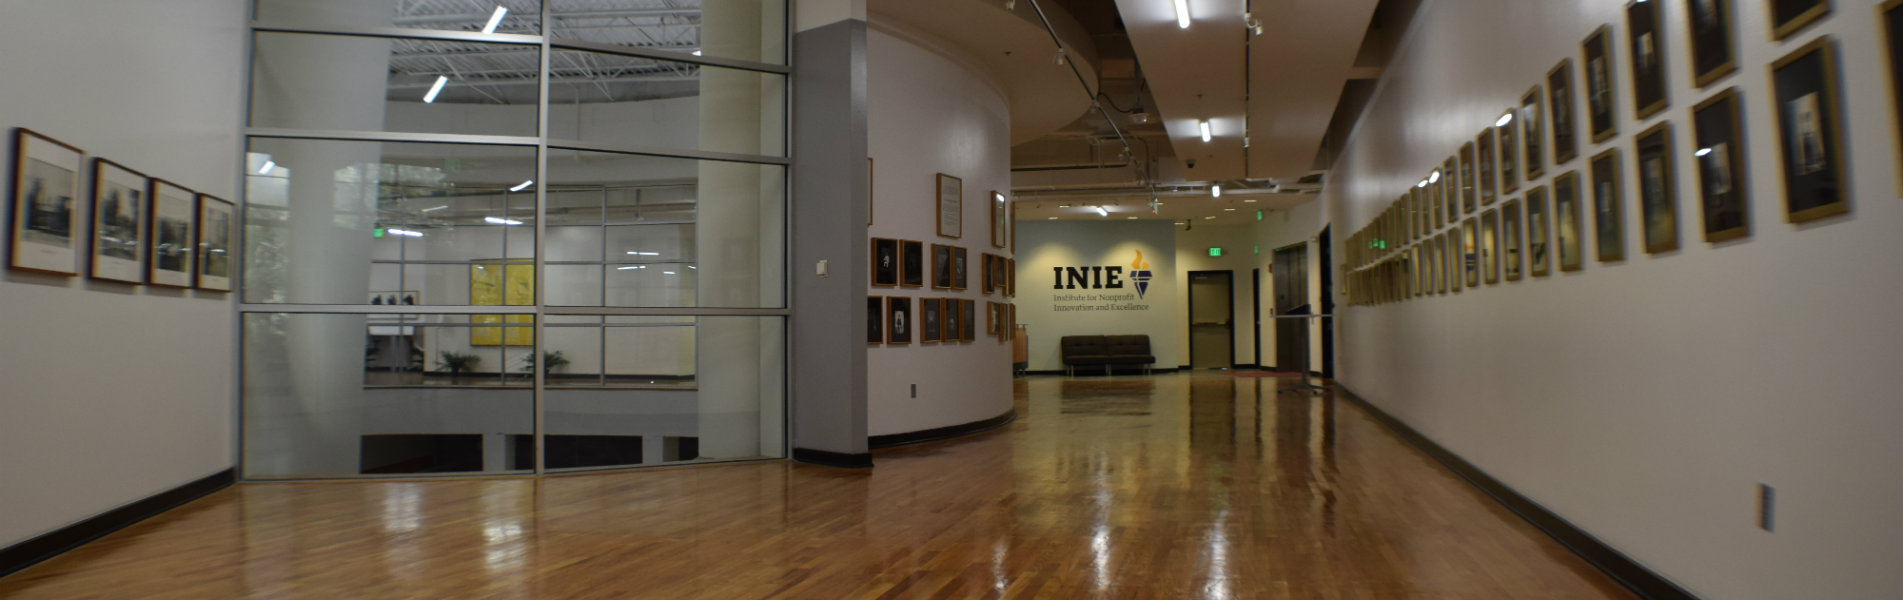 Third floor of the TCC Center for Innovation, home of the Institute for Nonprofit Innovation and Excellence